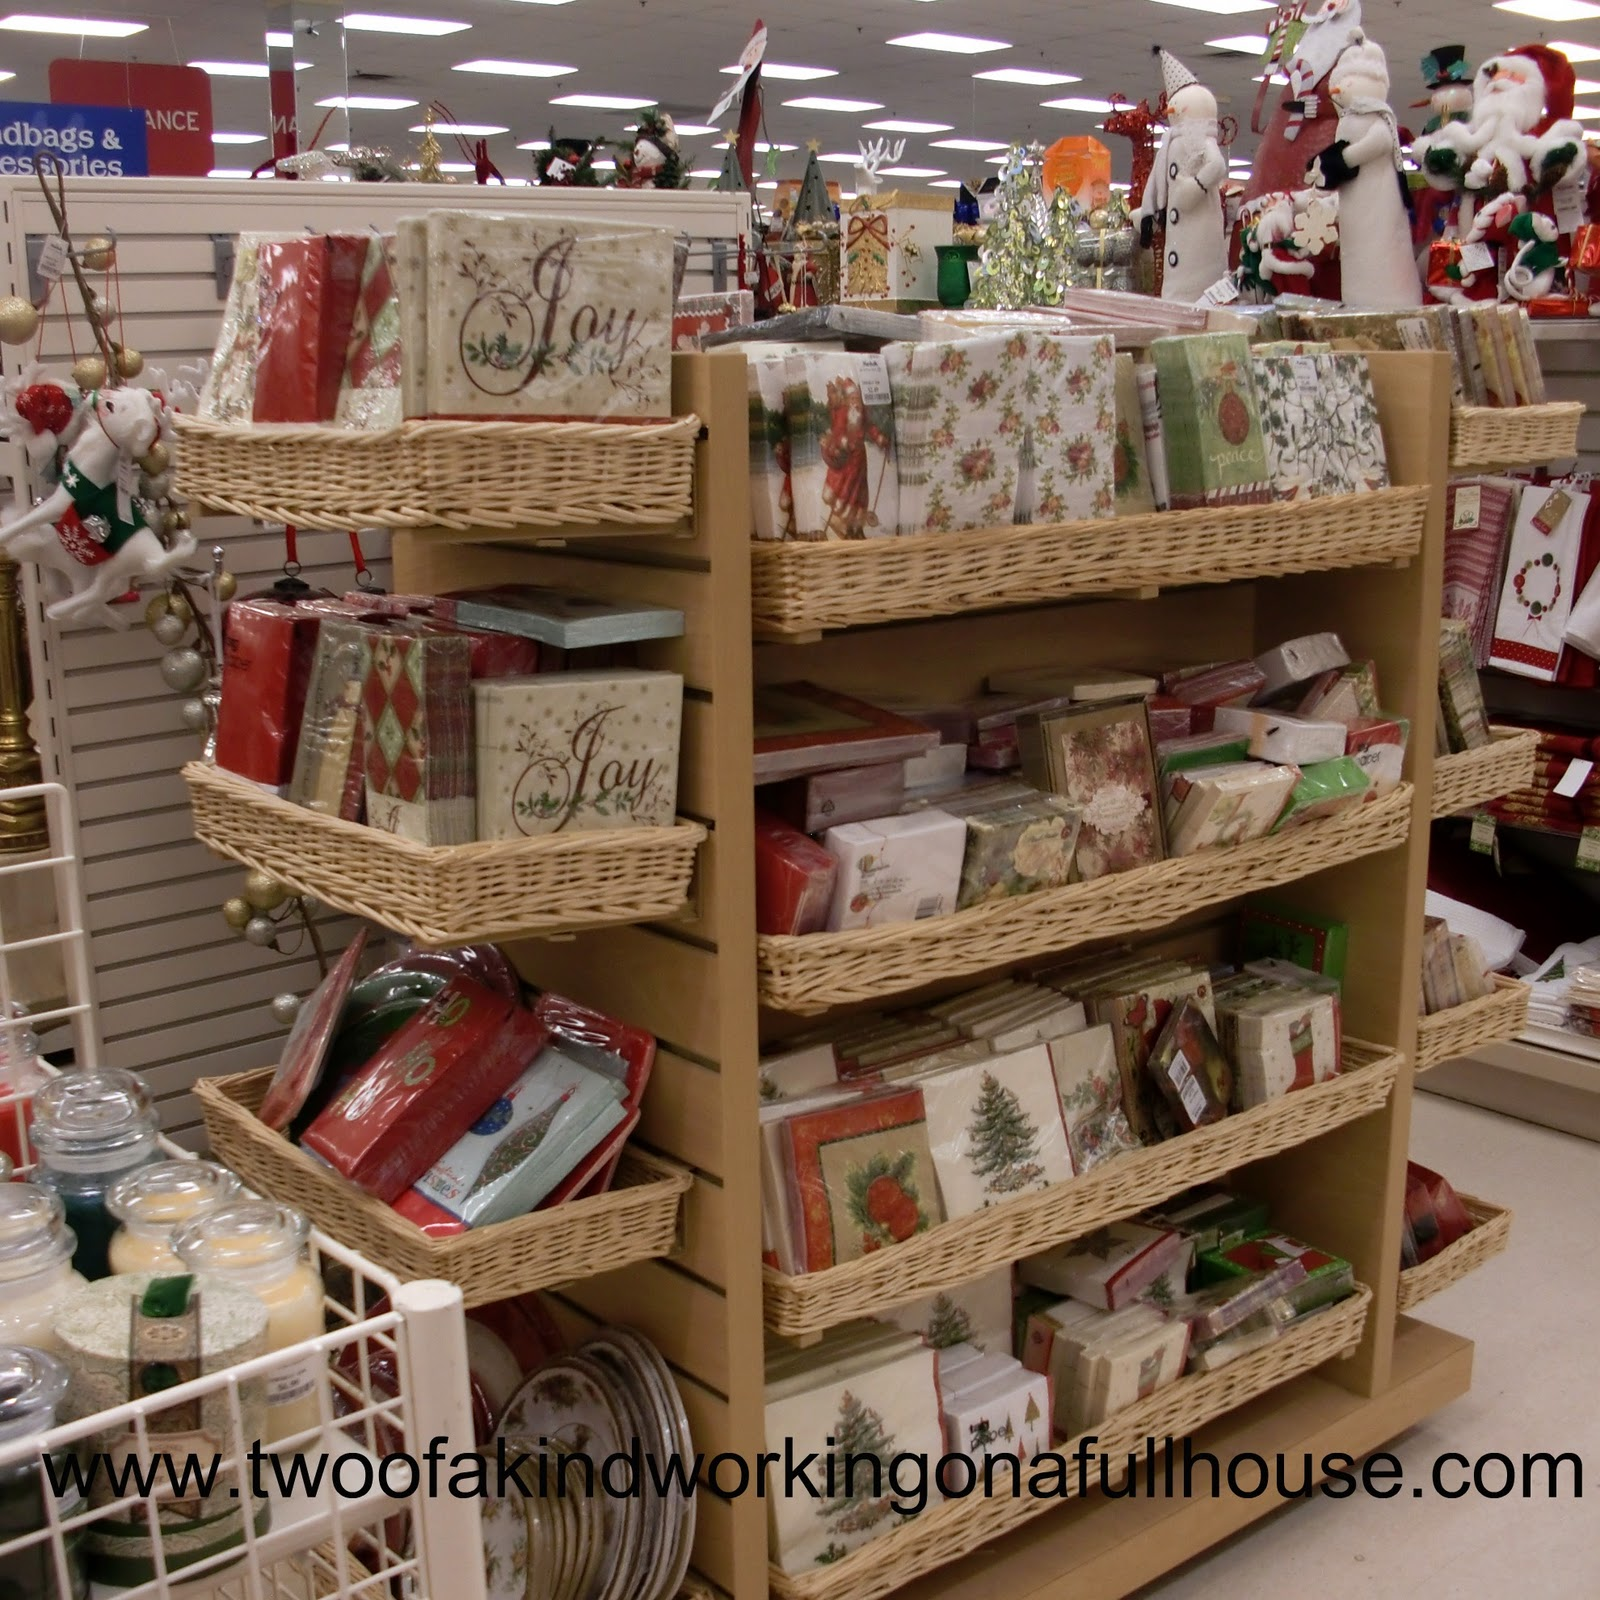 Having A Christmas Party? Need Some Holiday Themed Tableware?